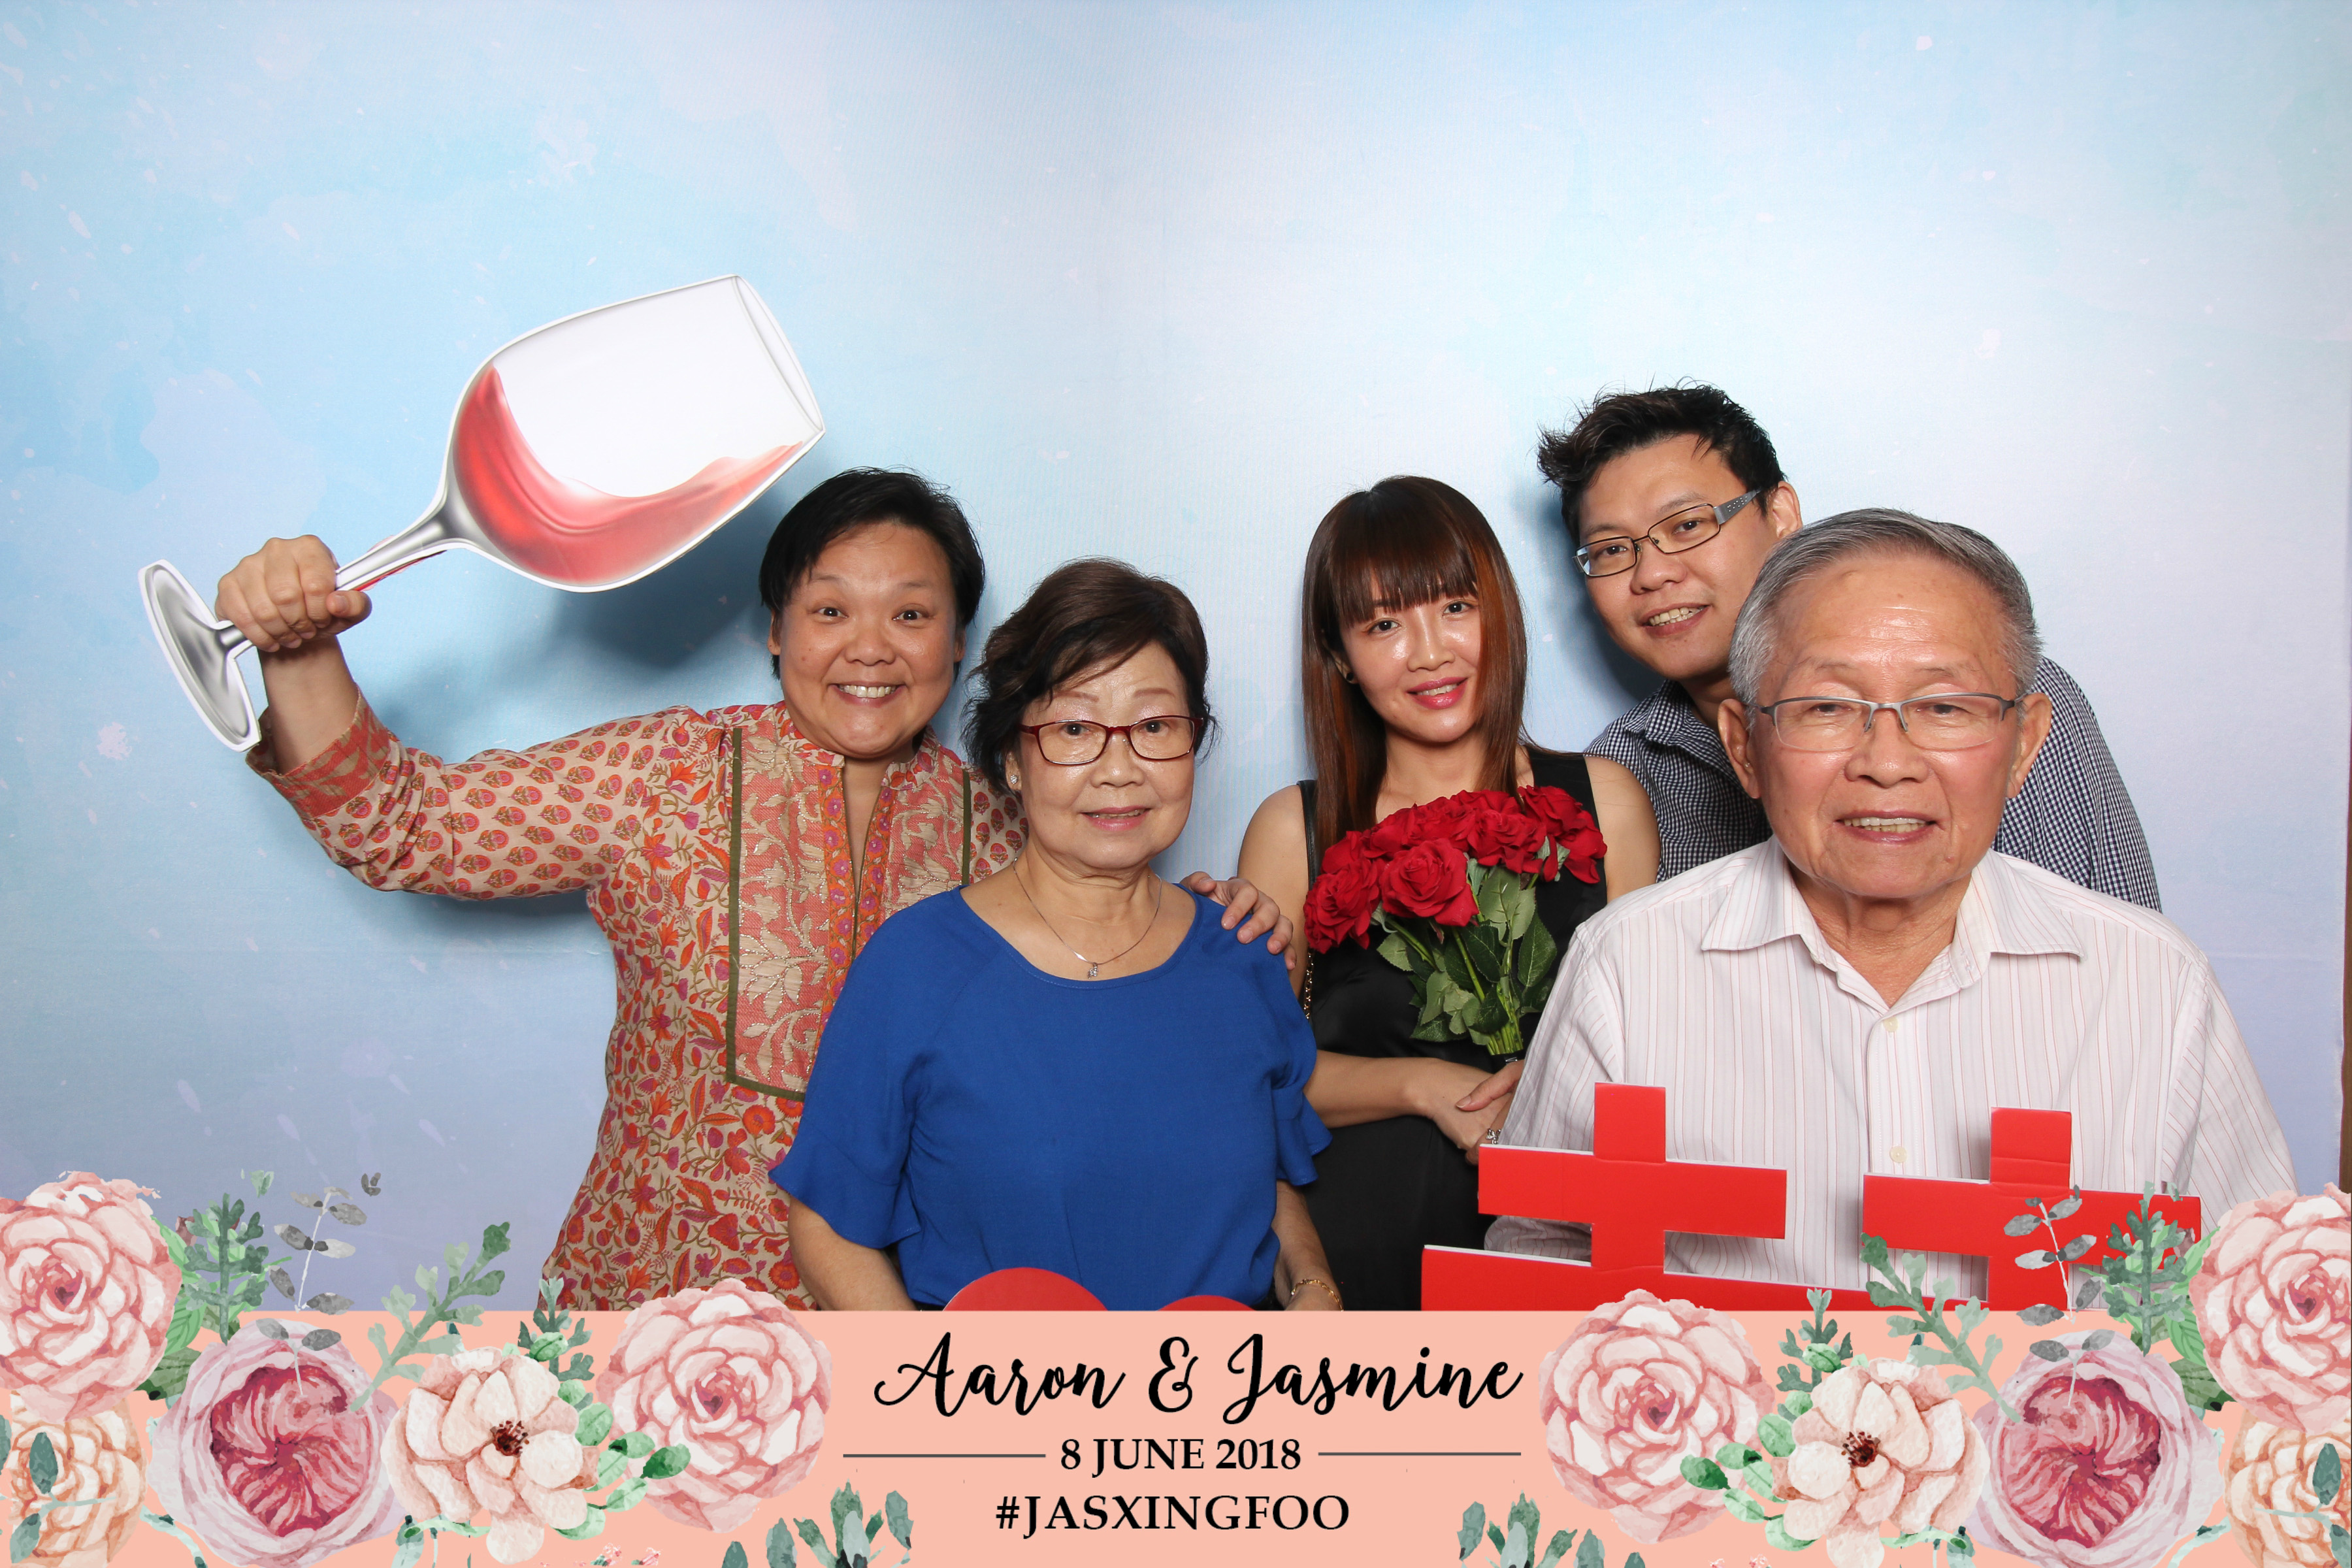 Photobooth 0806-100